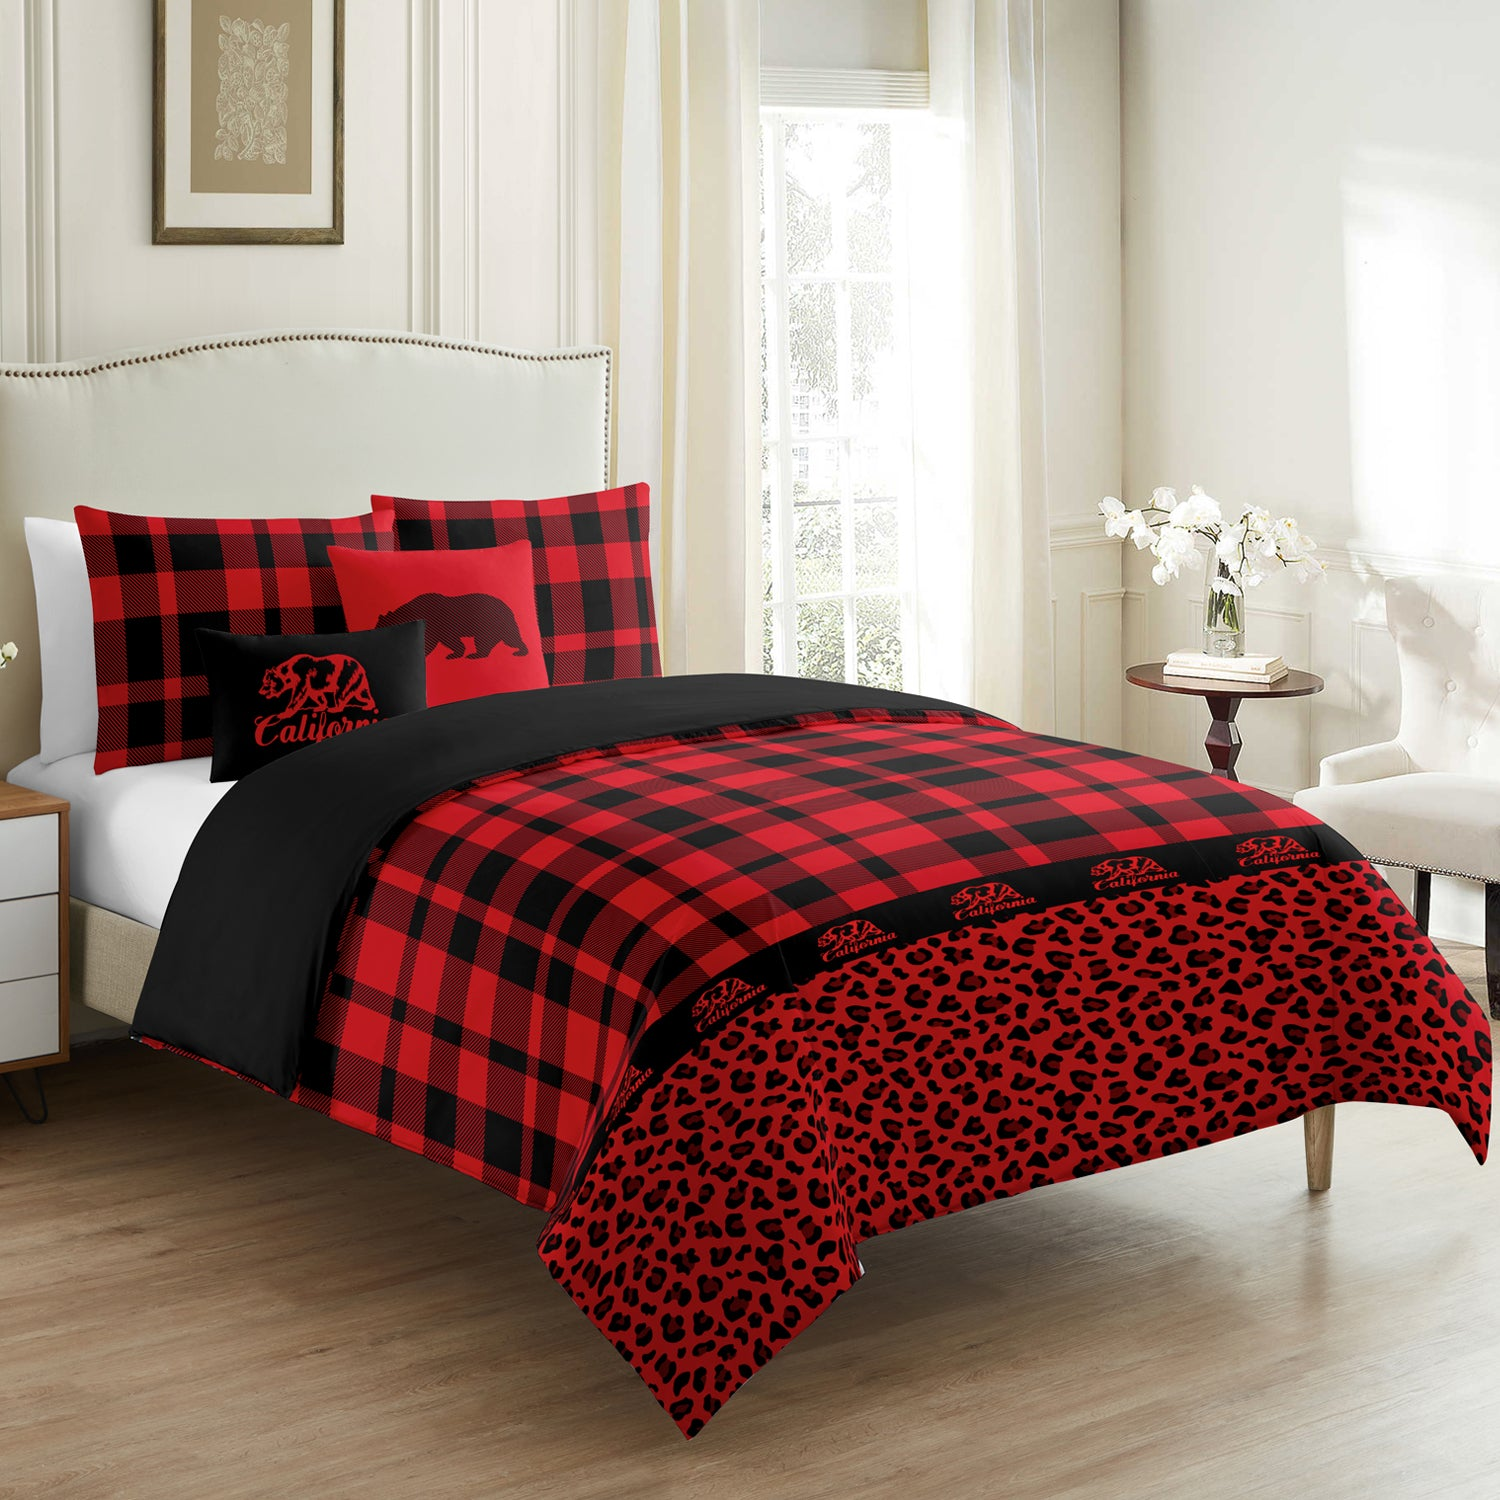 Red Buffalo Check Duvet Cover Set 5 pcs - Merrylife